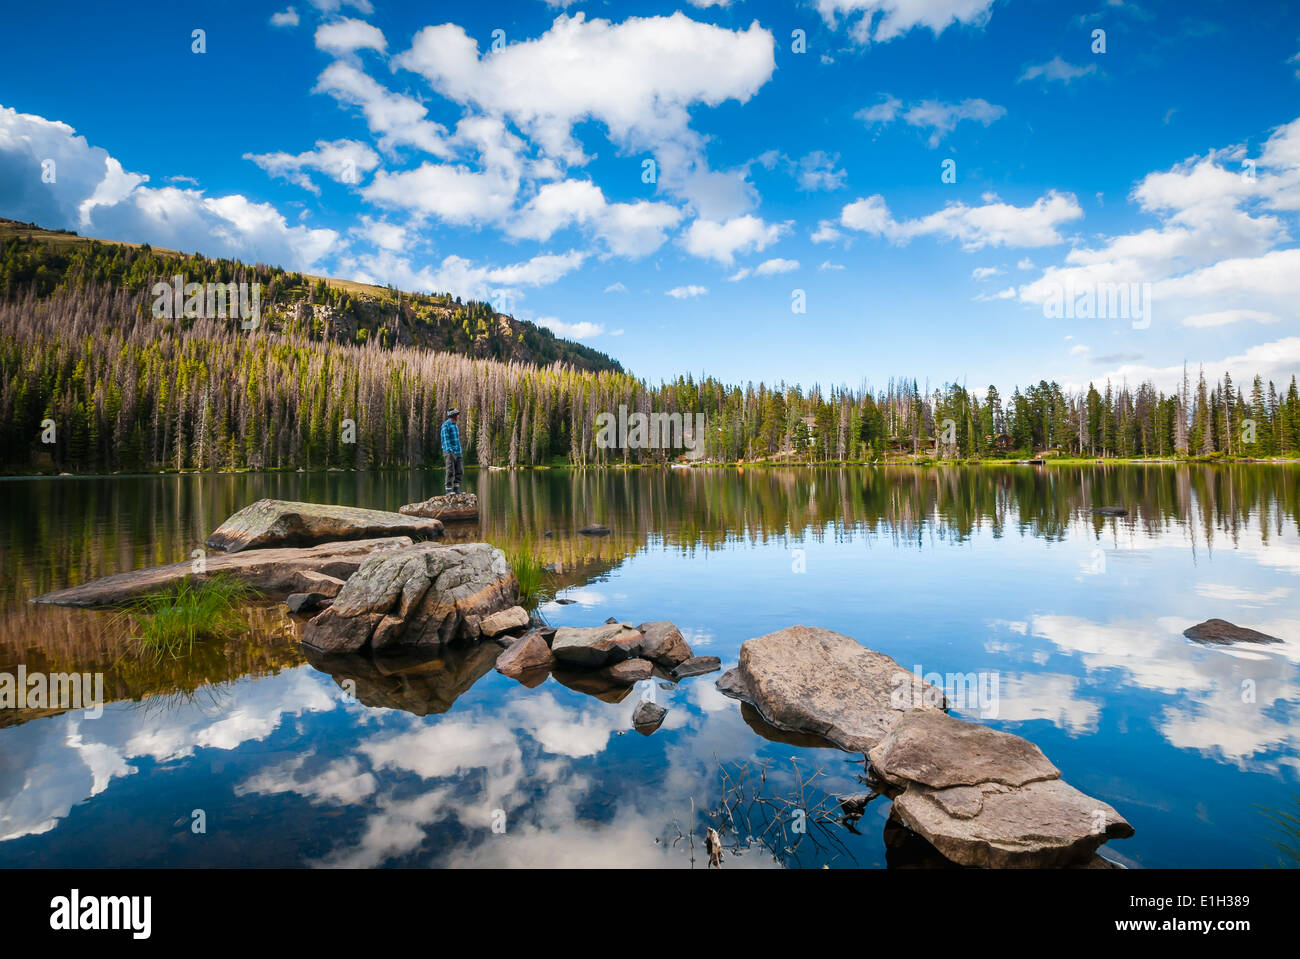 Hiker on pathway of rocks with reflections of clouds, Quinescoe Lake Cathedral Lakes Provincial Park British Columbia Canada - Stock Image